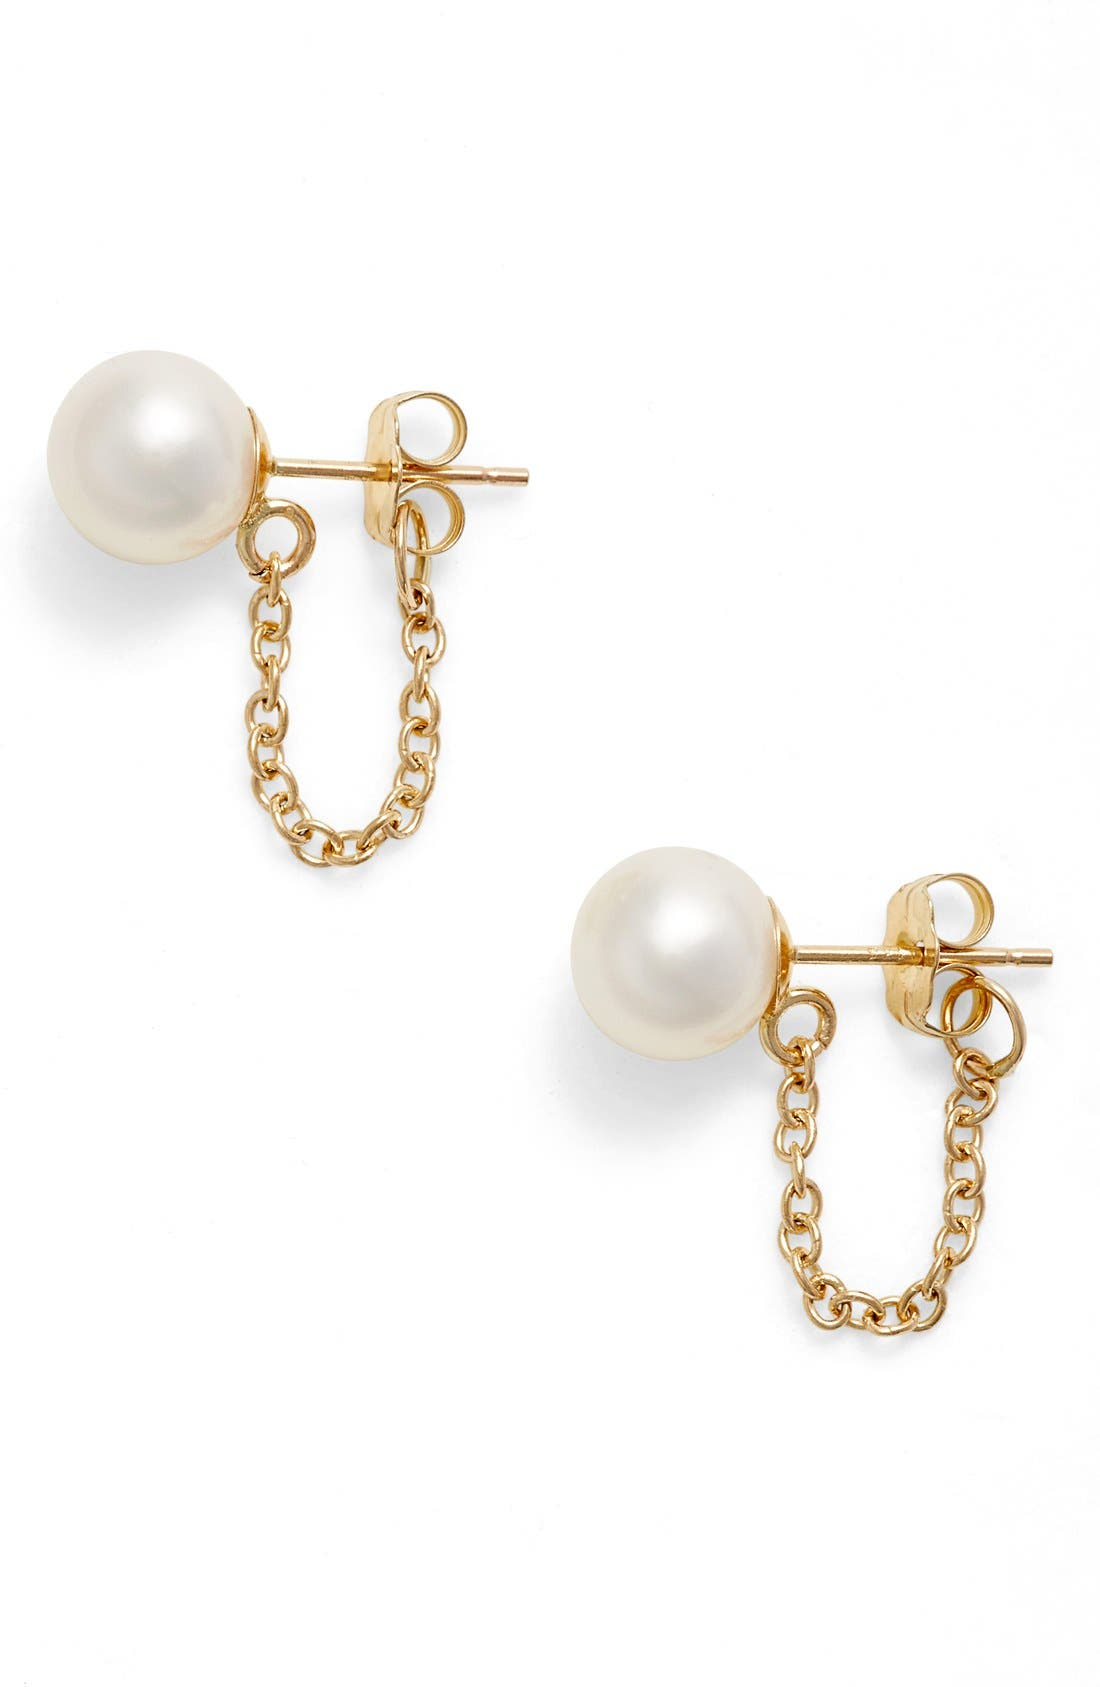 Pearl Ear Chains,                             Main thumbnail 1, color,                             YELLOW GOLD/ WHITE PEARL